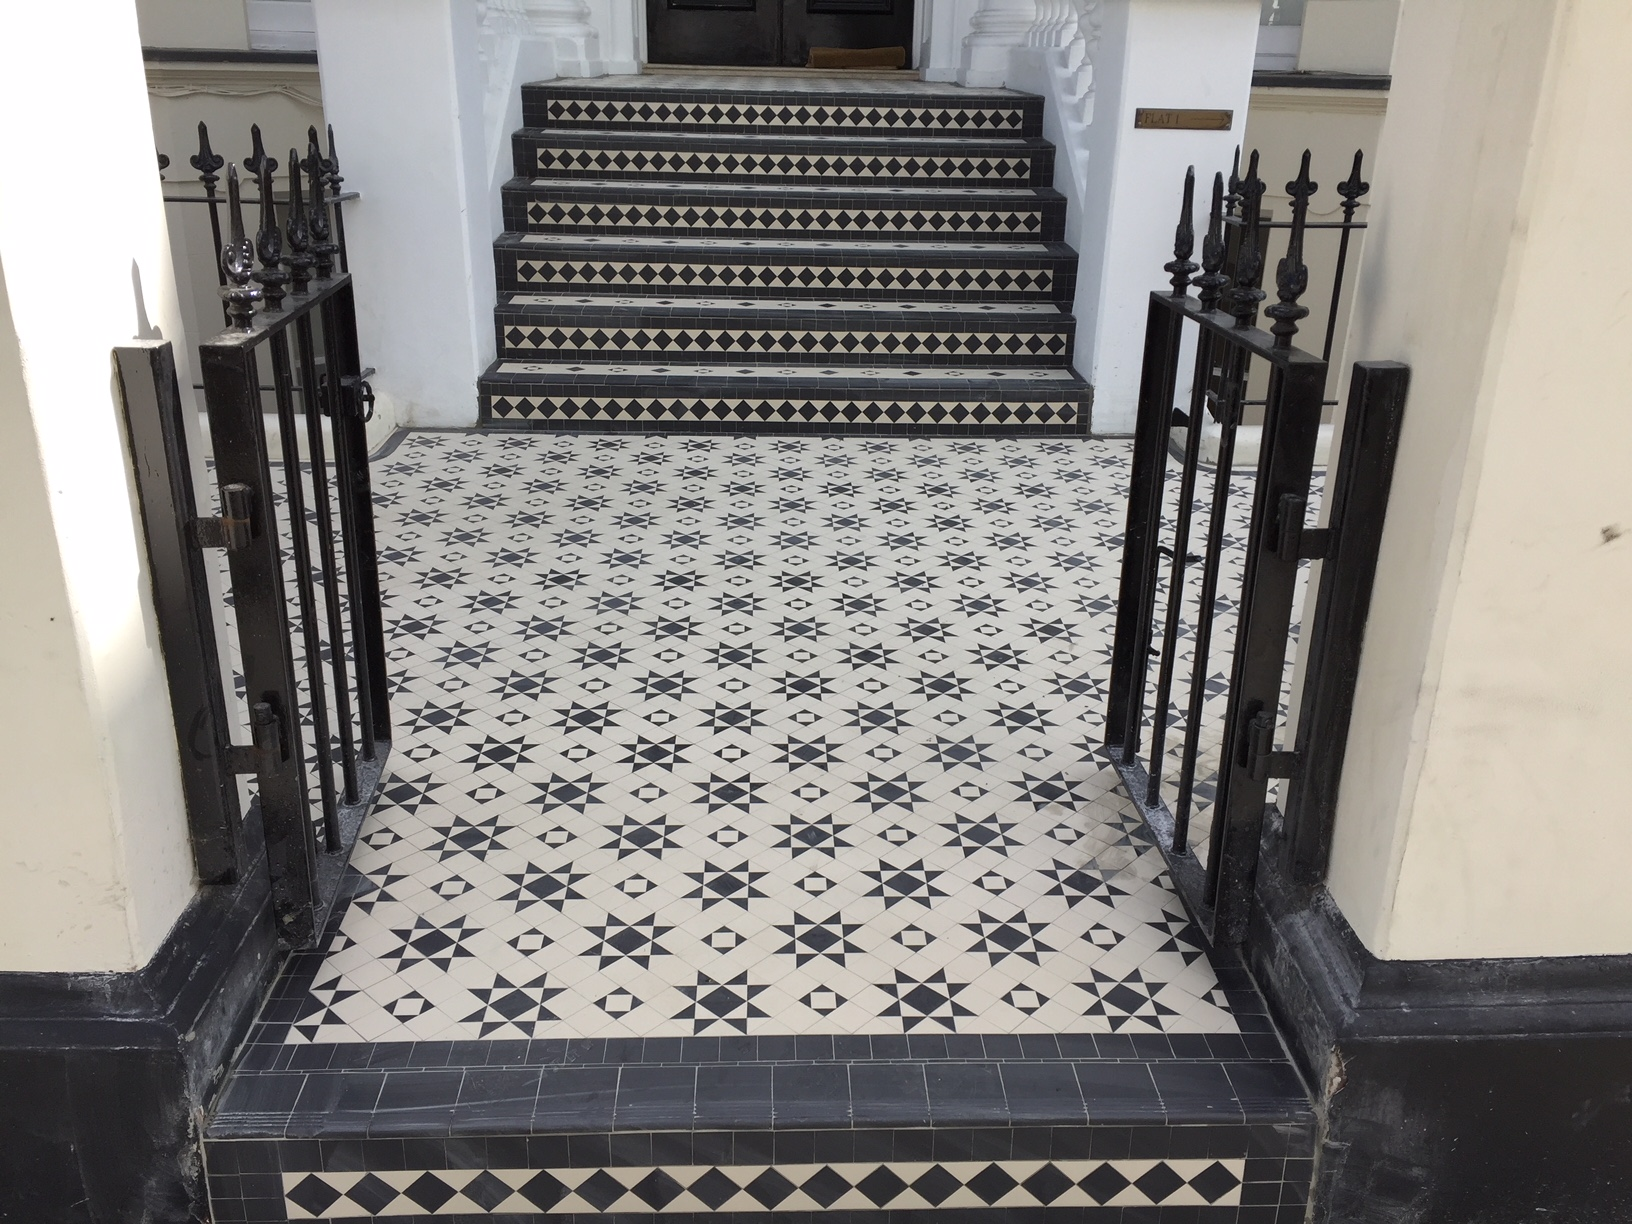 Examples of new bespoke geometric tile installations in Central London-2